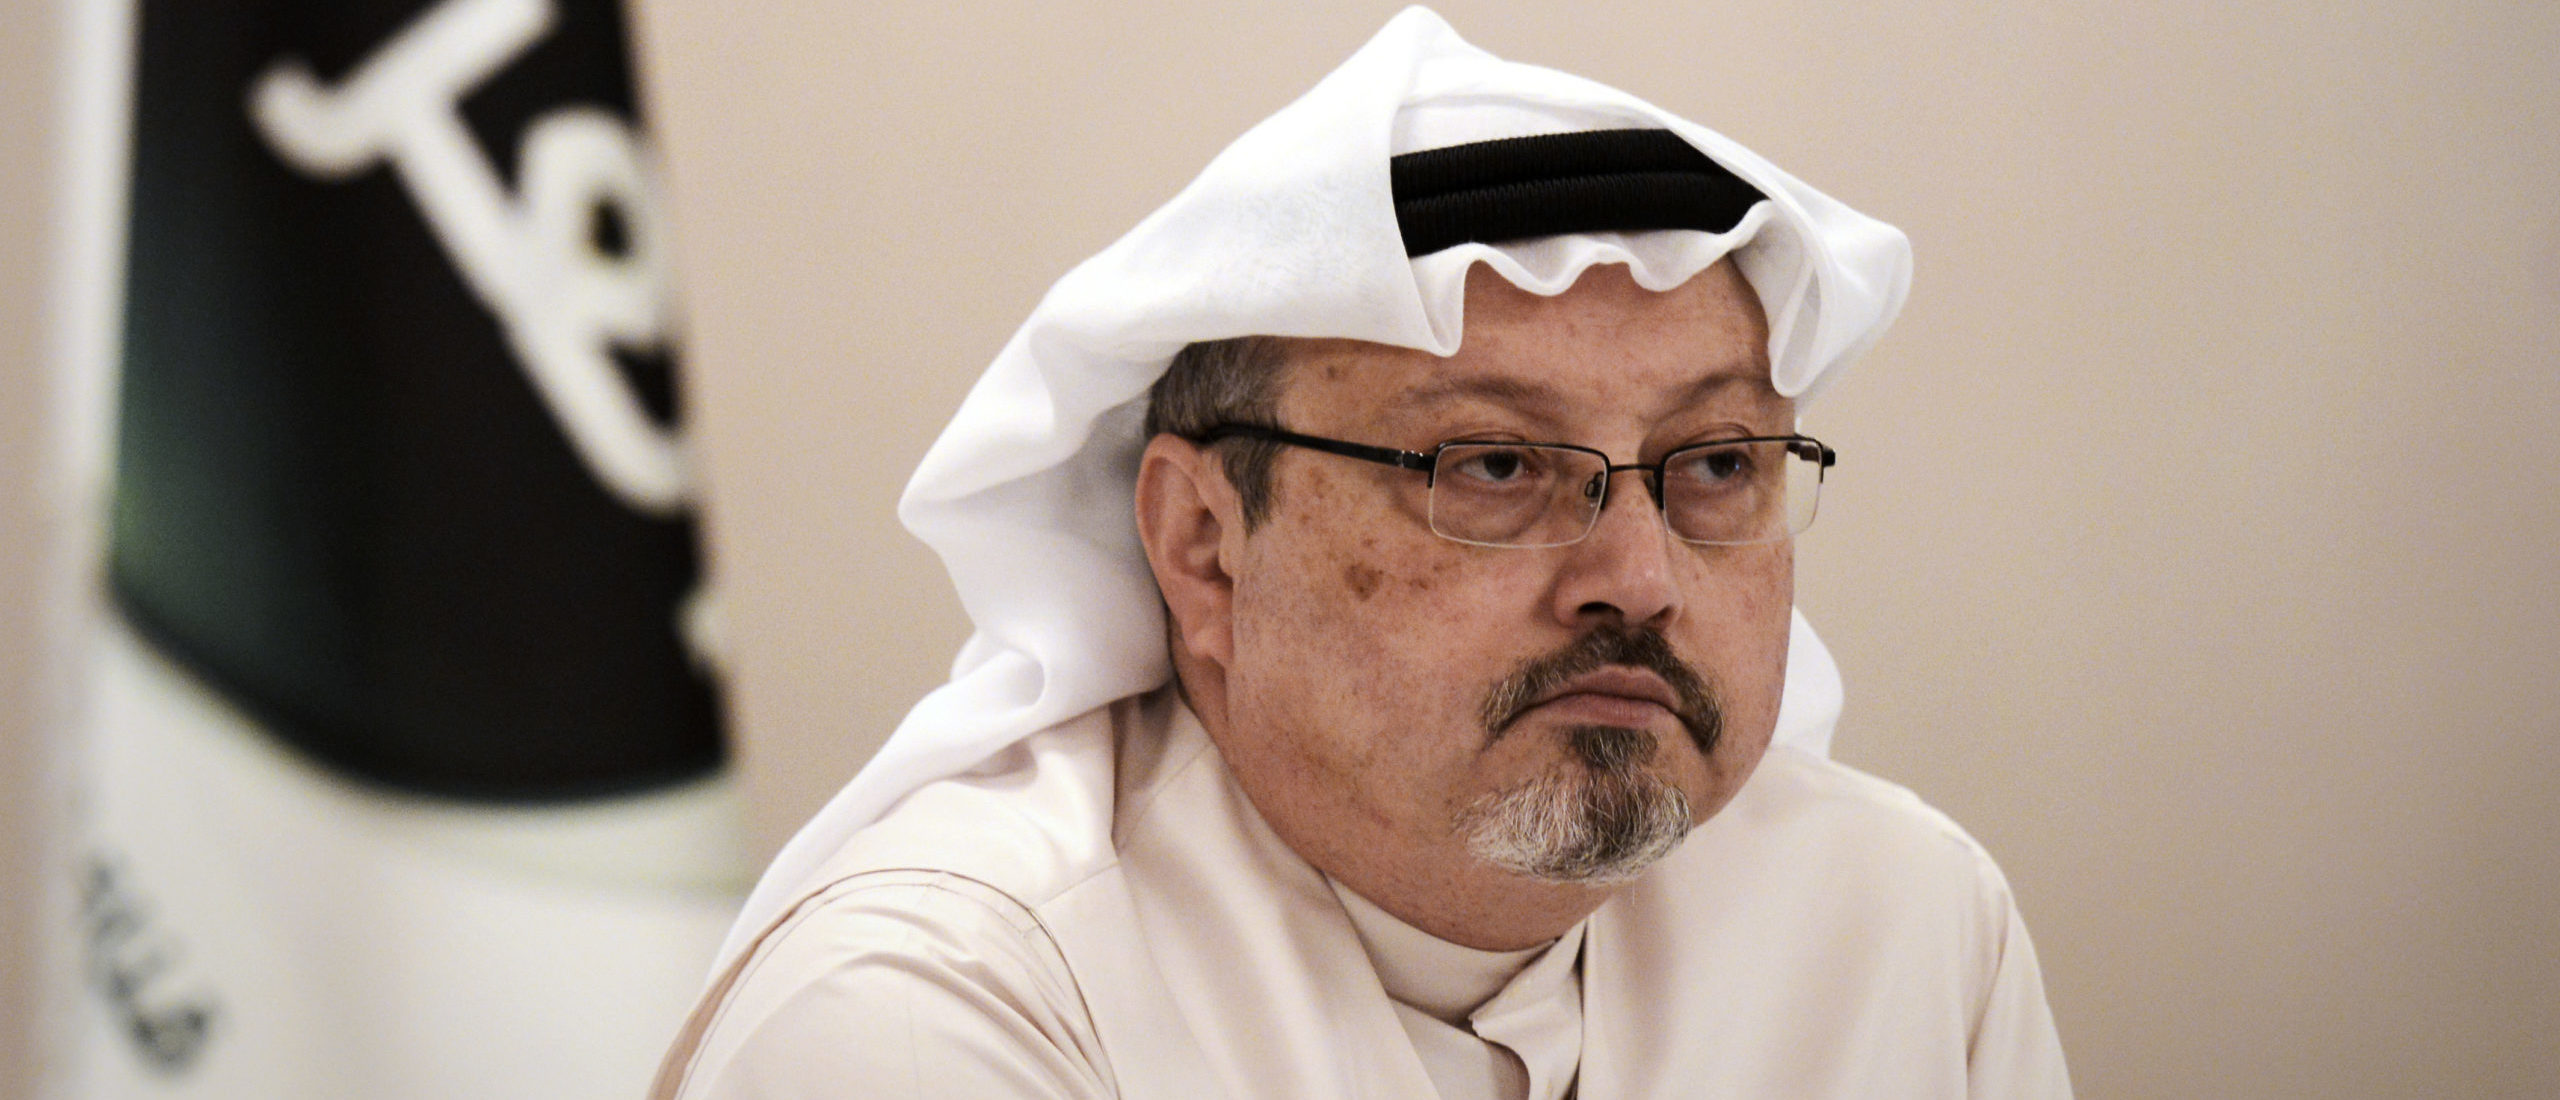 Jamal Khashoggi looks on during a press conference in the Bahraini capital Manama, on December 15, 2014. (Mohammed Al-Shaikh/AFP via Getty Images)